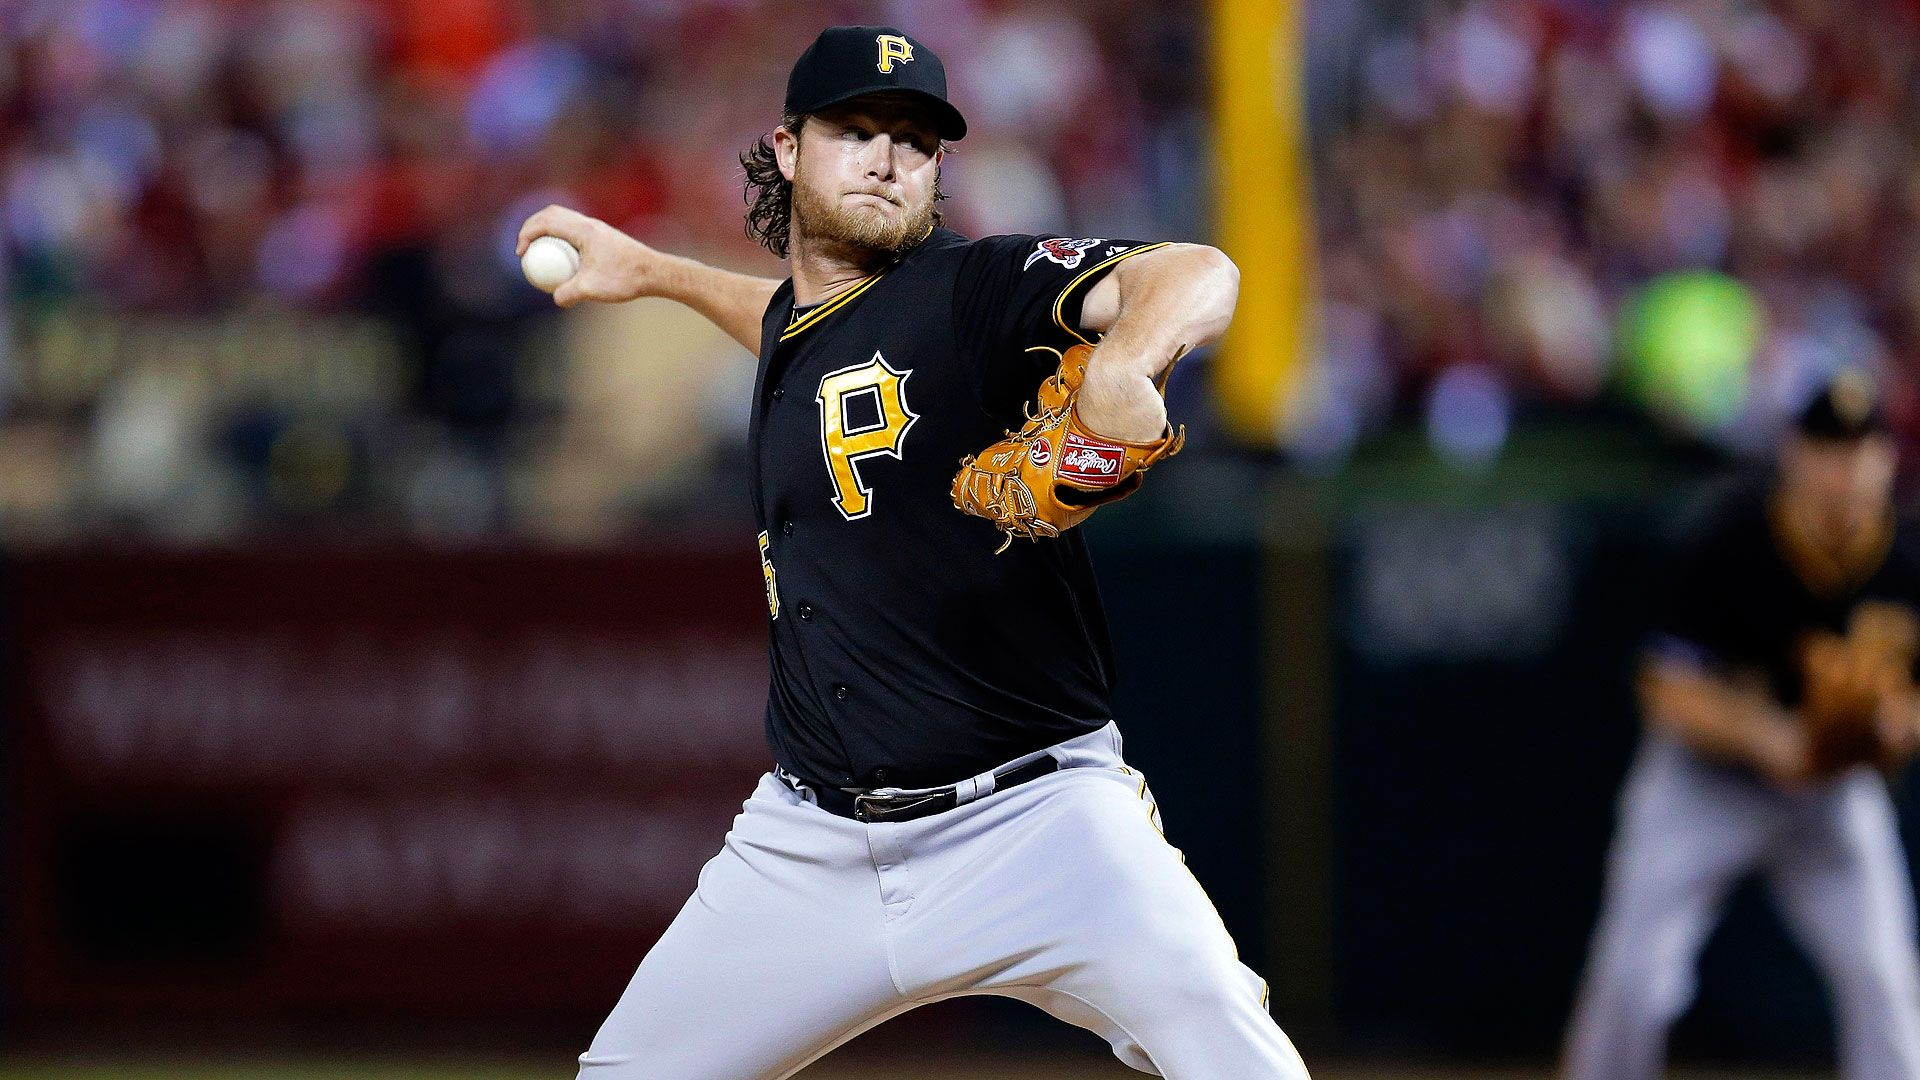 All Star Pitcher Gerrit Cole Goes To Arbitration With Astros